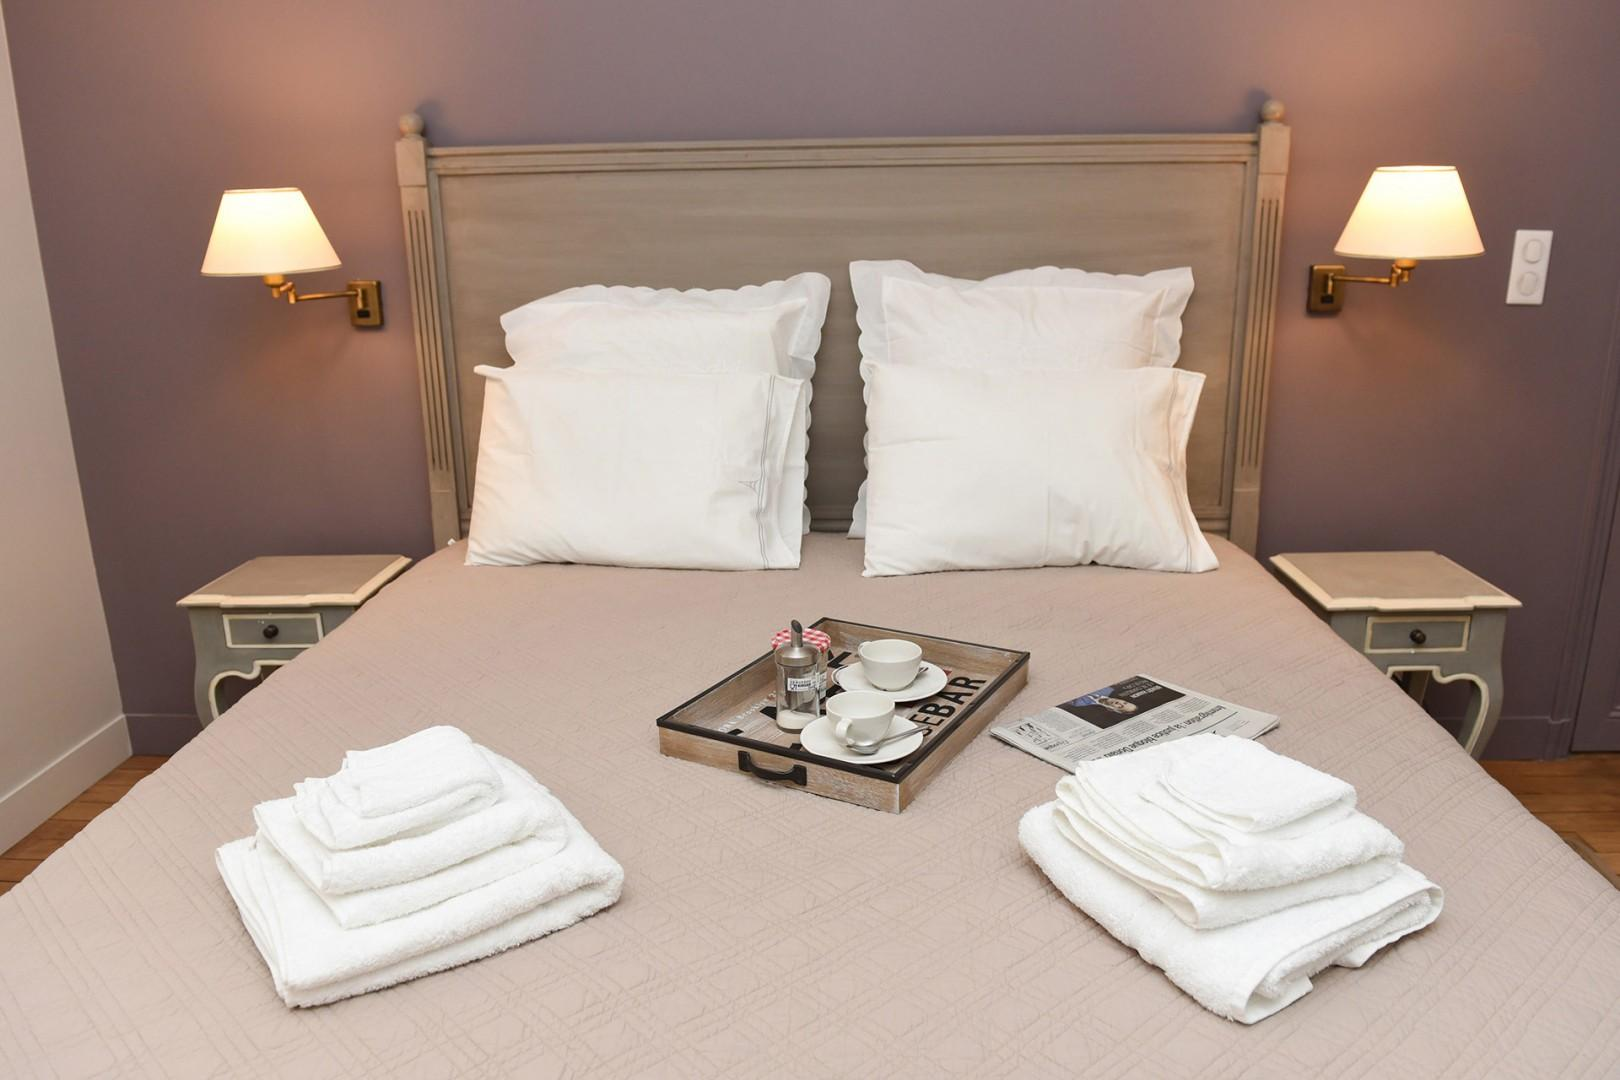 Relax in the comfortable bed after a fun day of sightseeing in Paris.